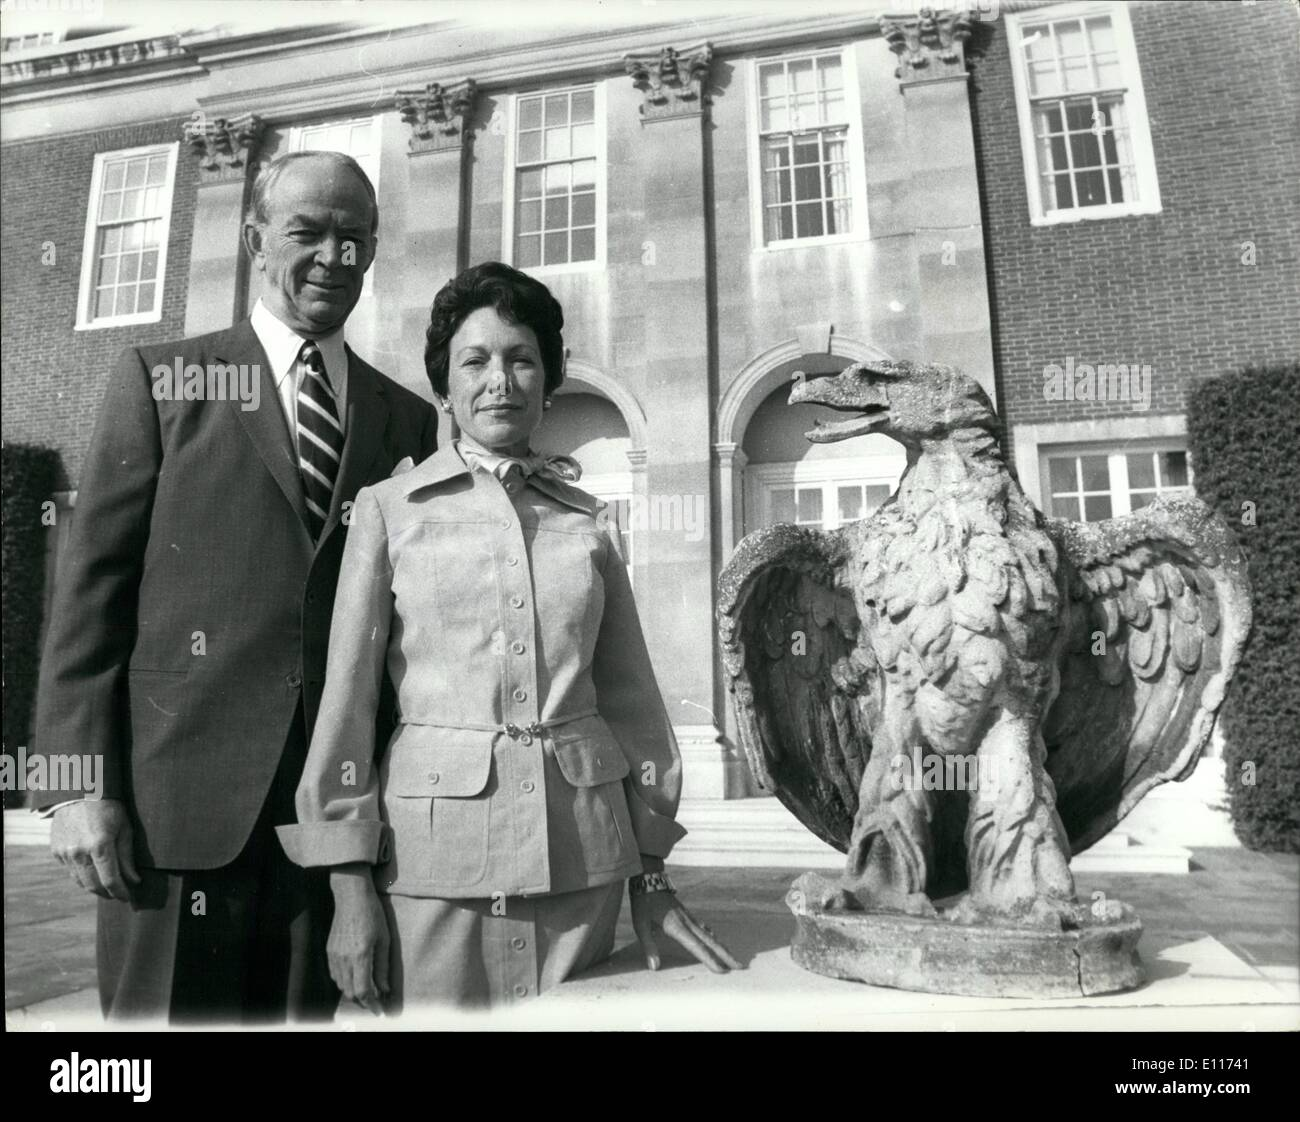 Mar. 03, 1976 - America's New woman Ambassador to Britain meets the press: Members of the press were invited to meet MRS ANNE ARMSTRONG, the new American Ambassador to Britain, at the Ambassador's residence at Winfield House, Regents Park, London, today. Photo shows MRS ANNE ARMSTRONG and her husband TOBIN, a millionaire Texas rancher, pictured alongside a stone eagle, in the garden of Winfield House, the Ambassador's London residence, today. - Stock Image